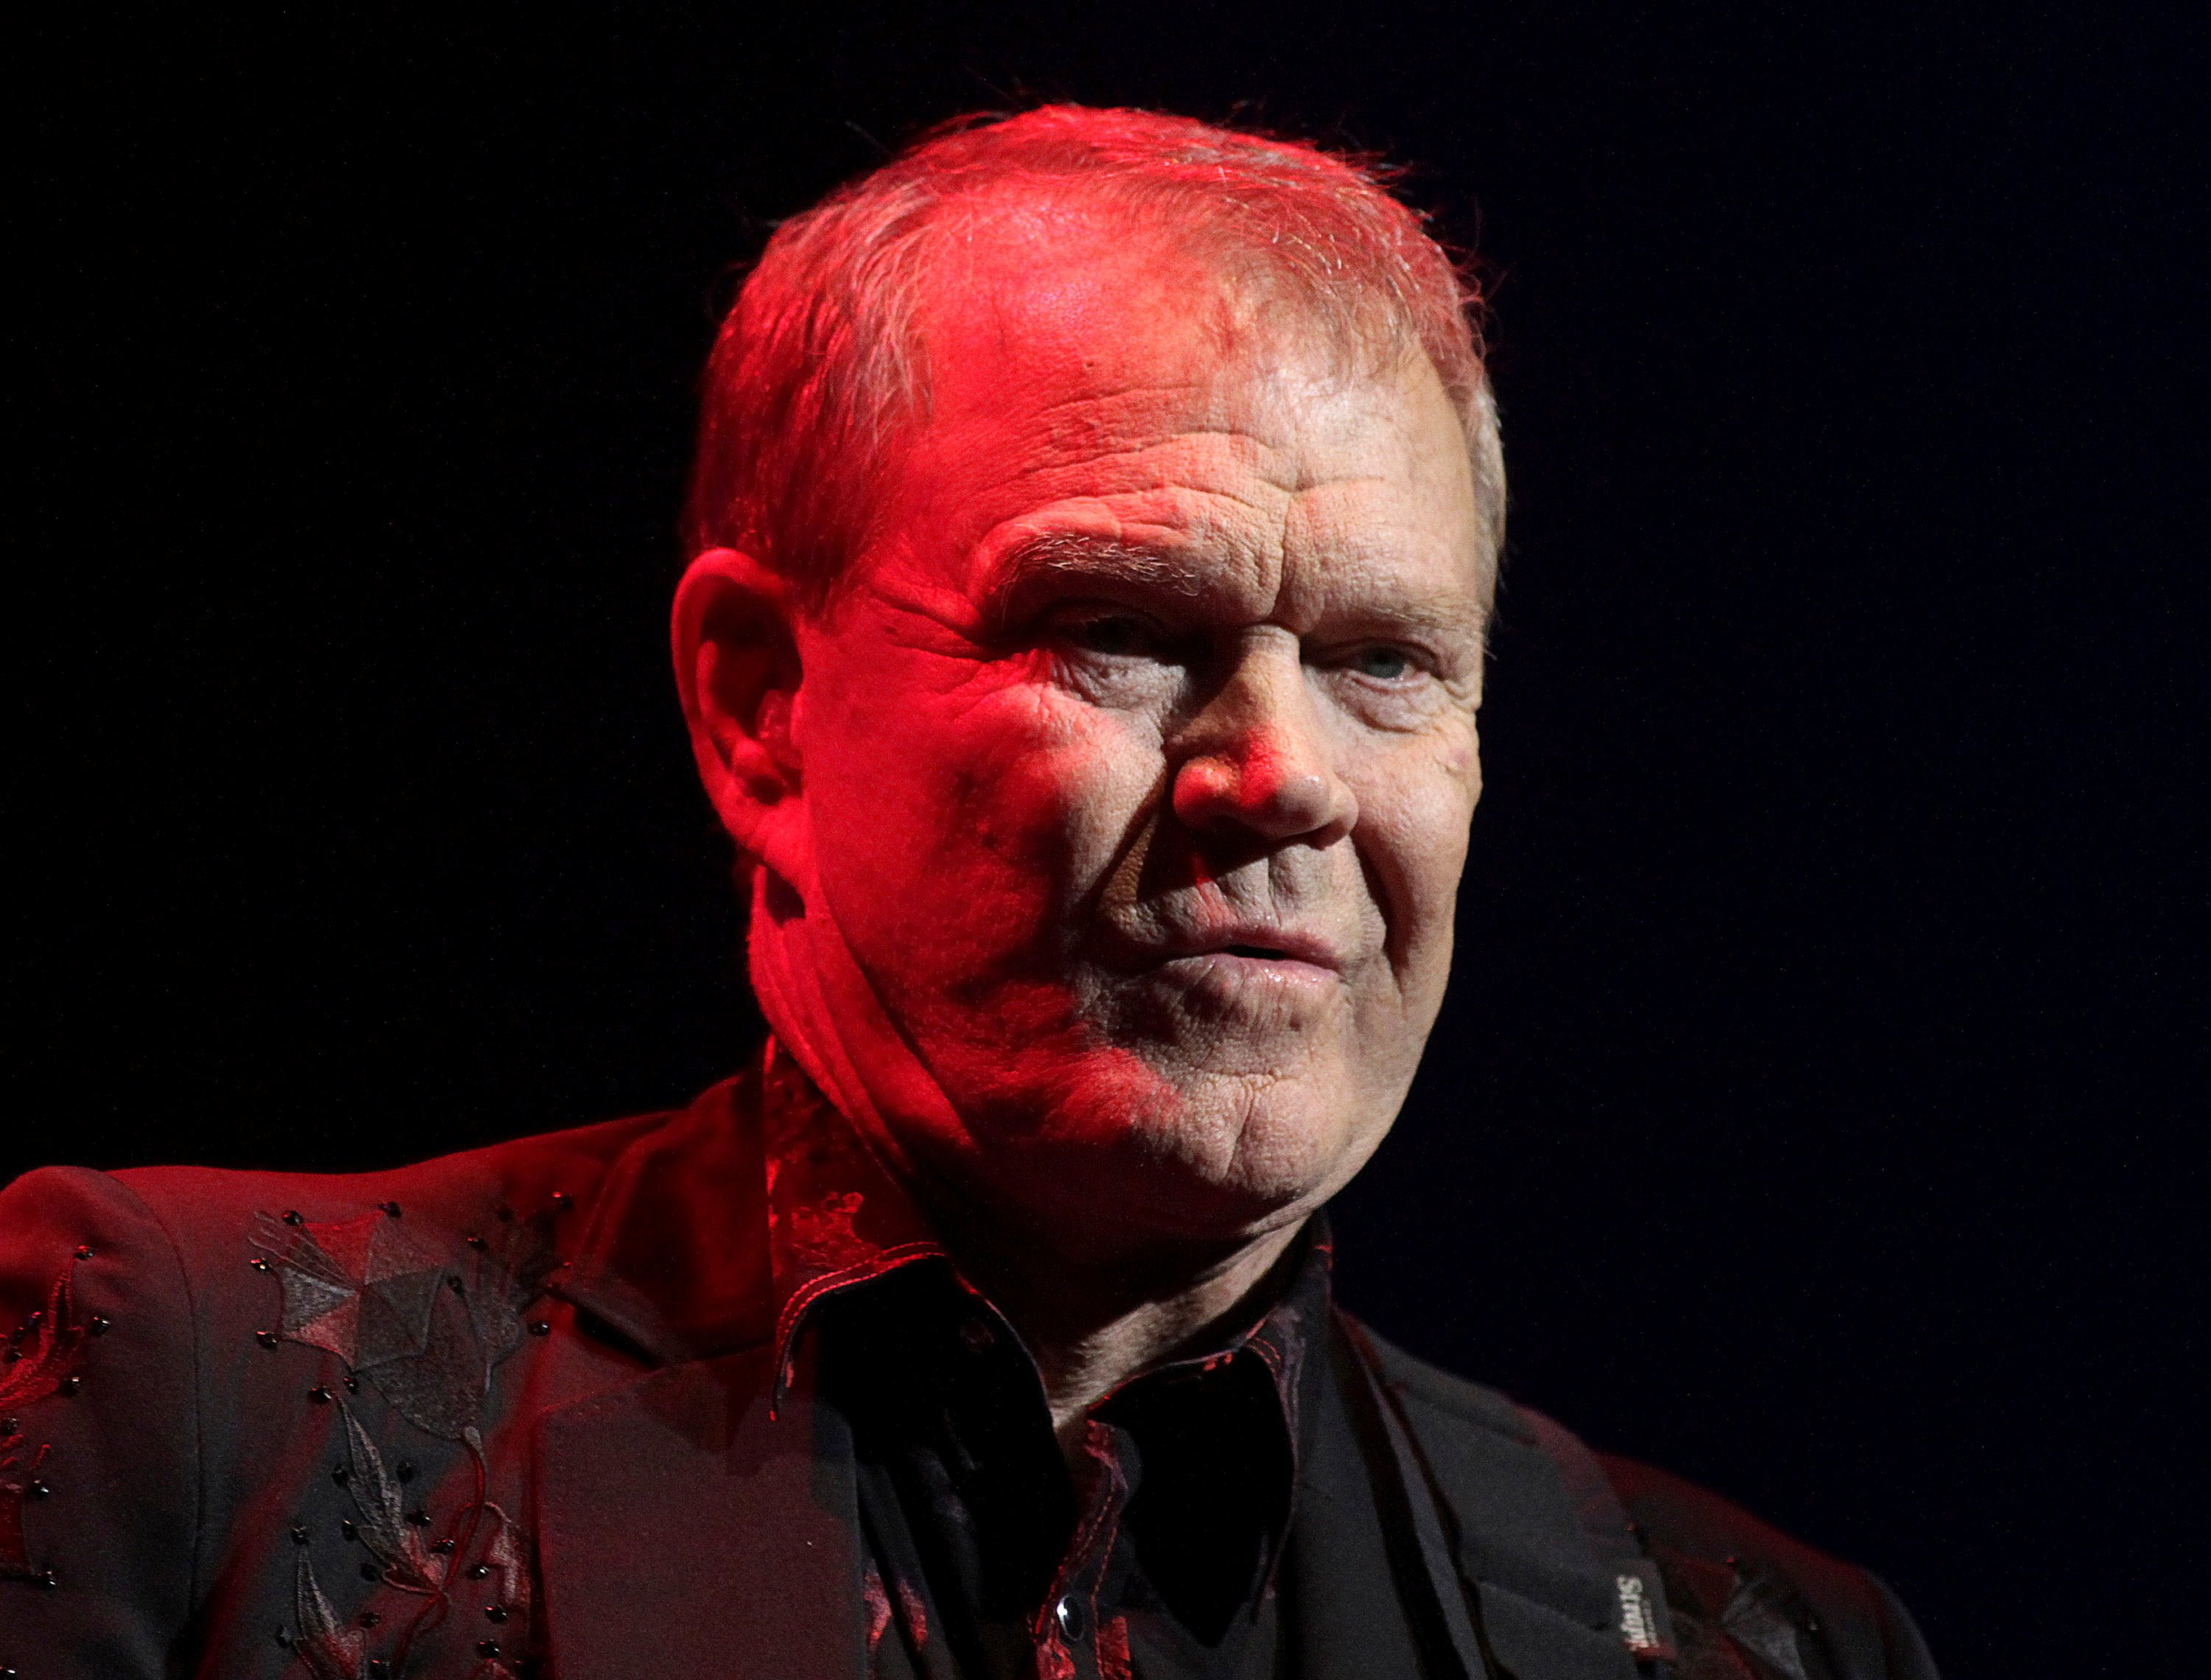 FILE PHOTO: Singer Glen Campbell, currently on a farewell concert tour following his recent diagnosis with Alzheimer's disease, performs on stage at Club Nokia in Los Angeles, California October 6, 2011. REUTERS/Jonathan Alcorn/File Photo